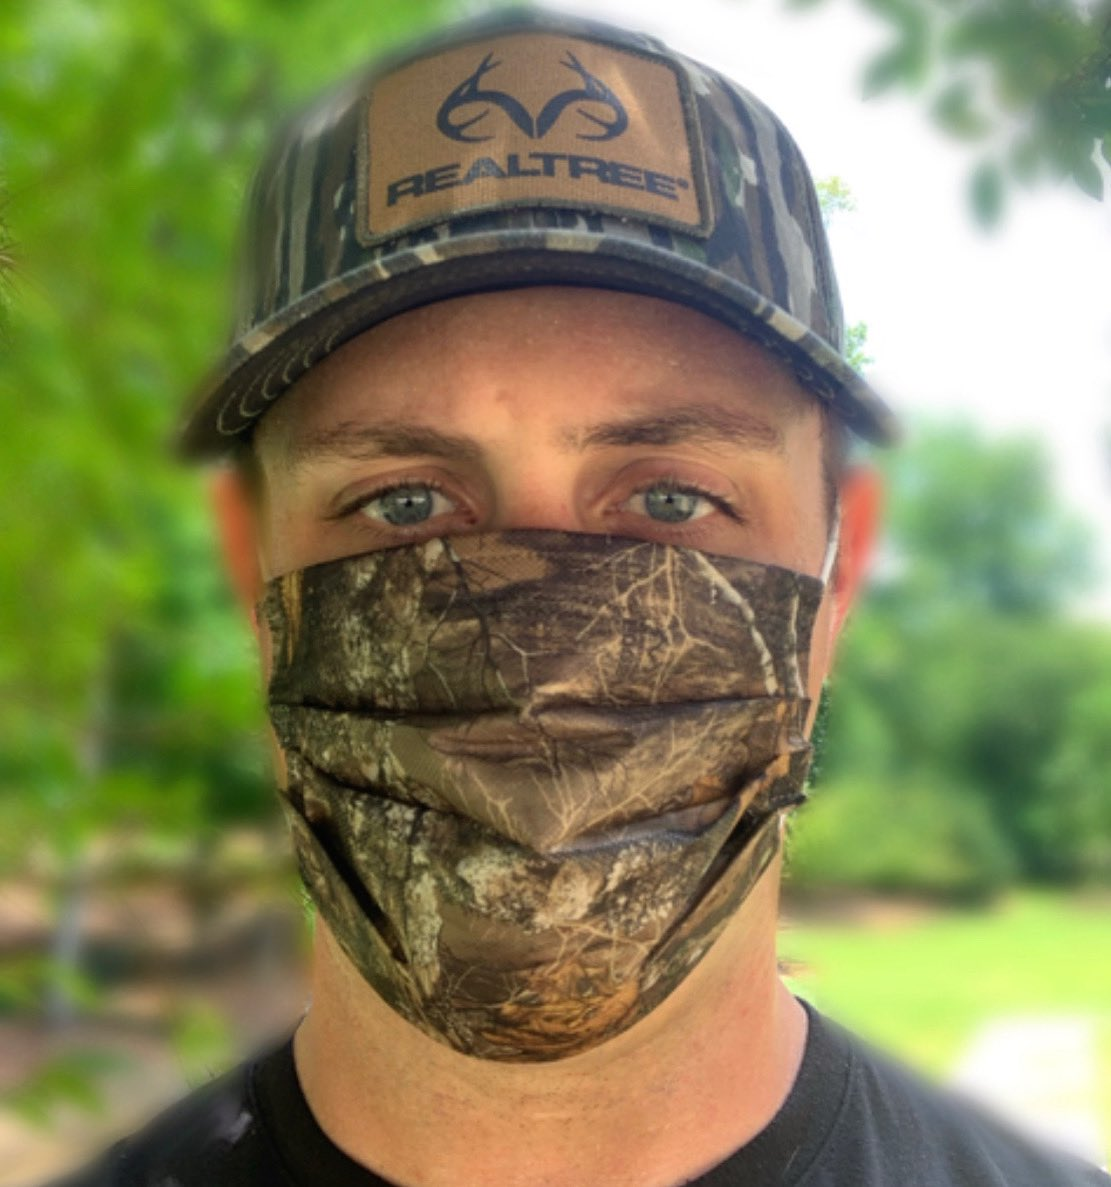 Wear a mask because your action might save lives! Get your @Realtree mask today —> bit.ly/2YK4dgY